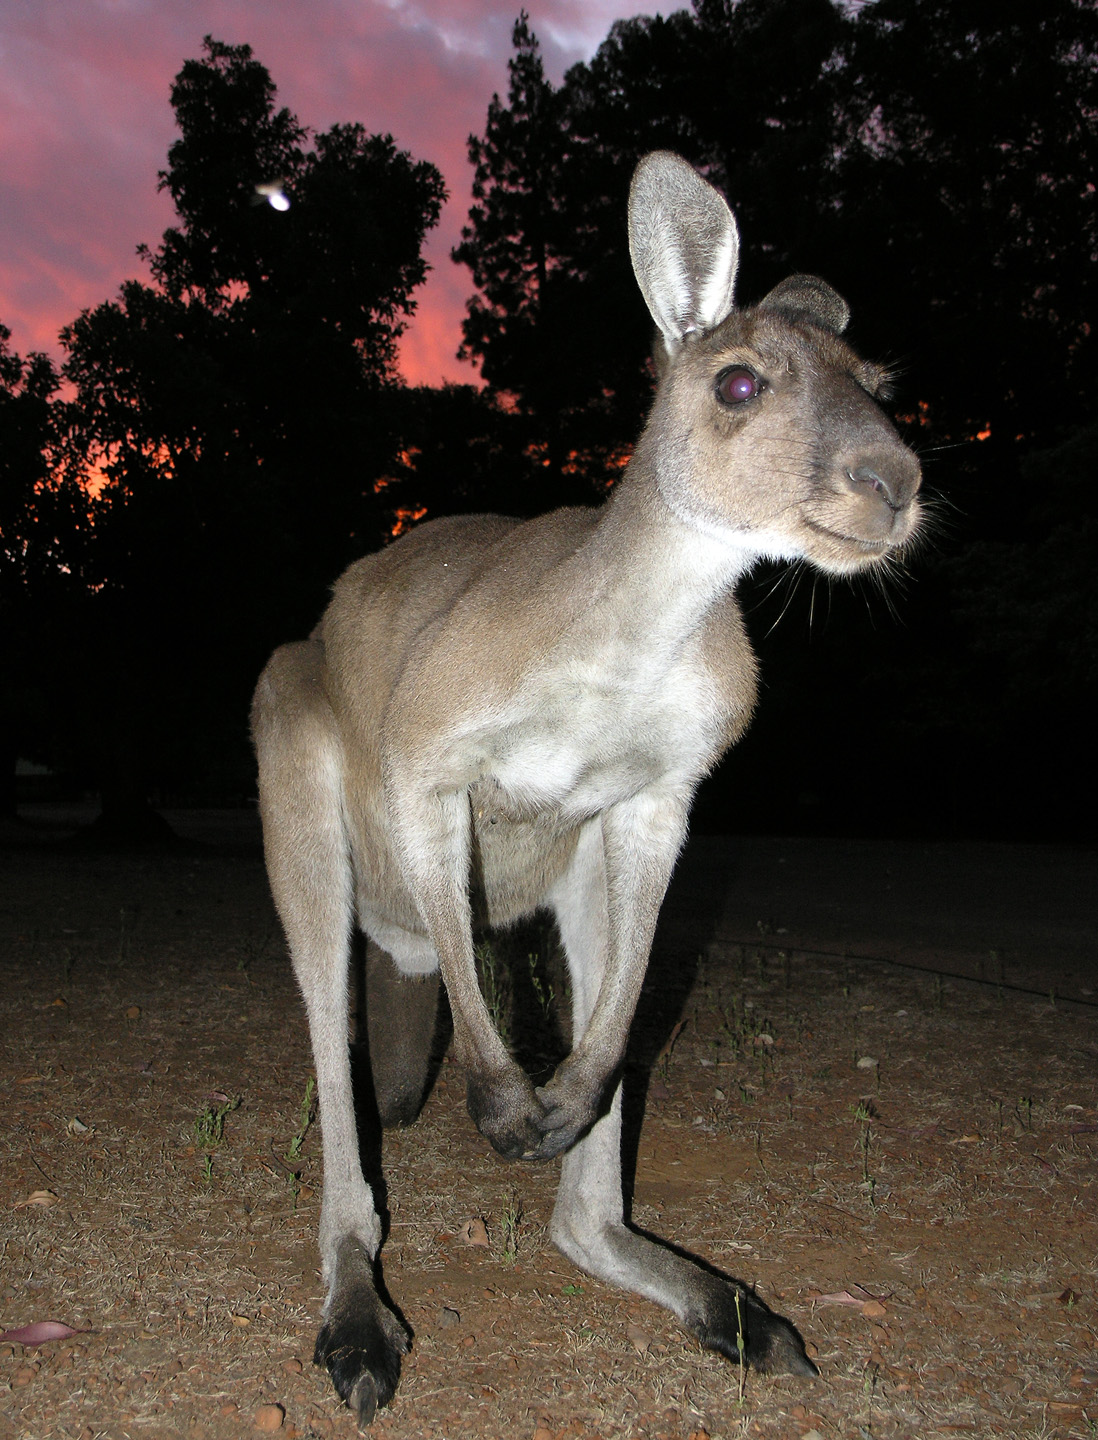 https://upload.wikimedia.org/wikipedia/commons/4/46/Western_Grey_Kangaroo_SMC_2006.JPG